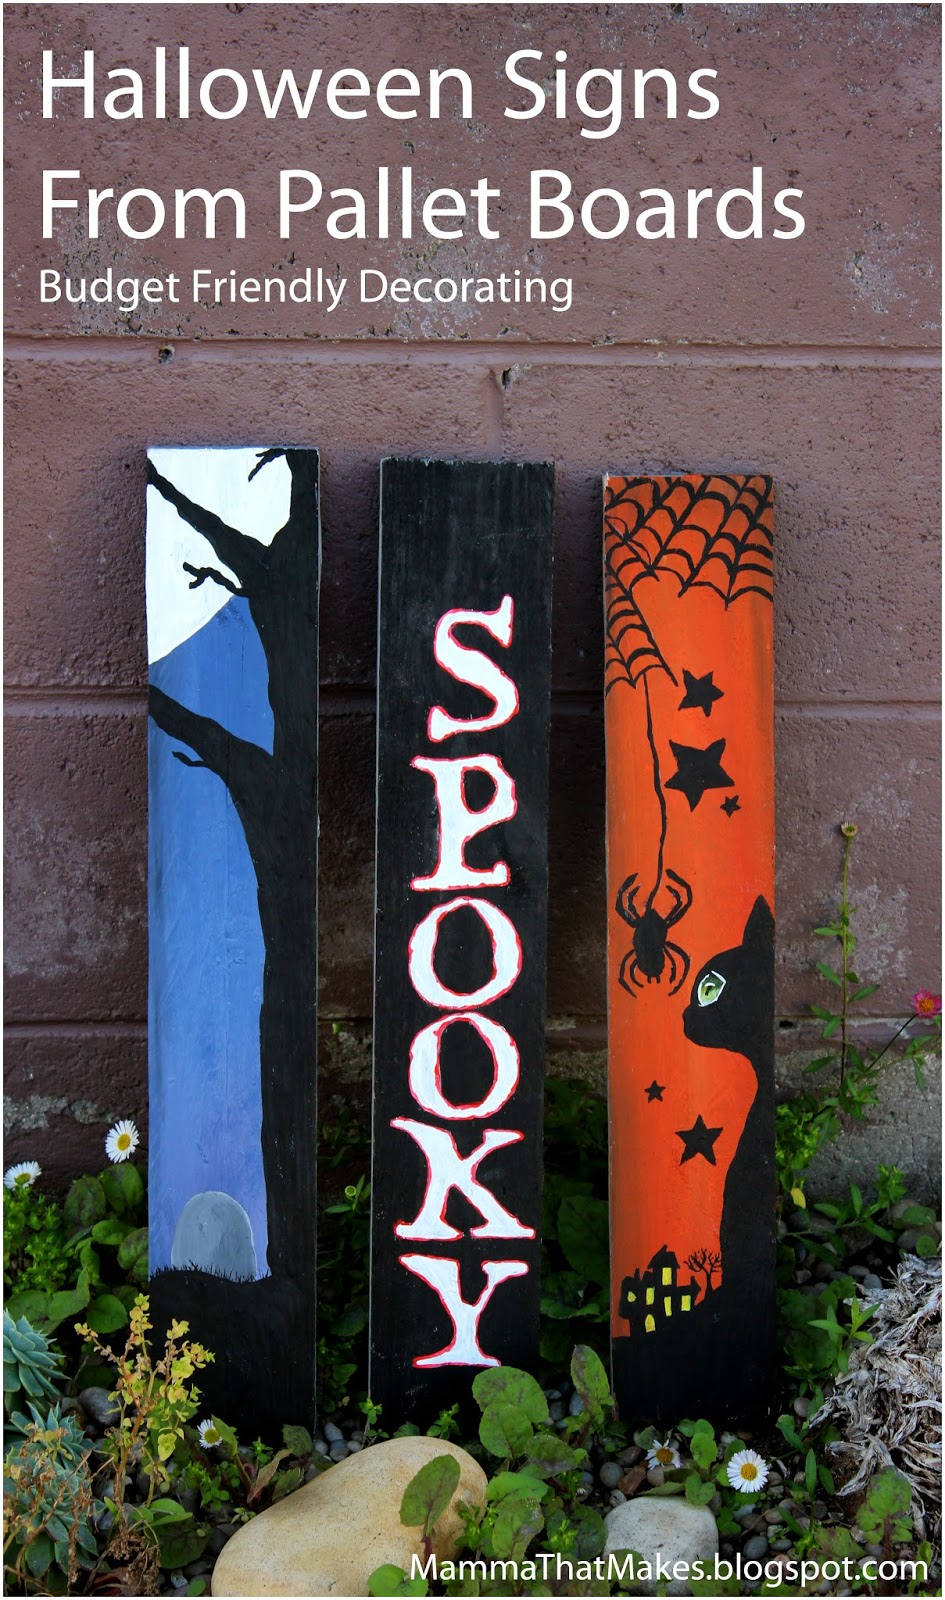 pinspiration halloween signs from pallets